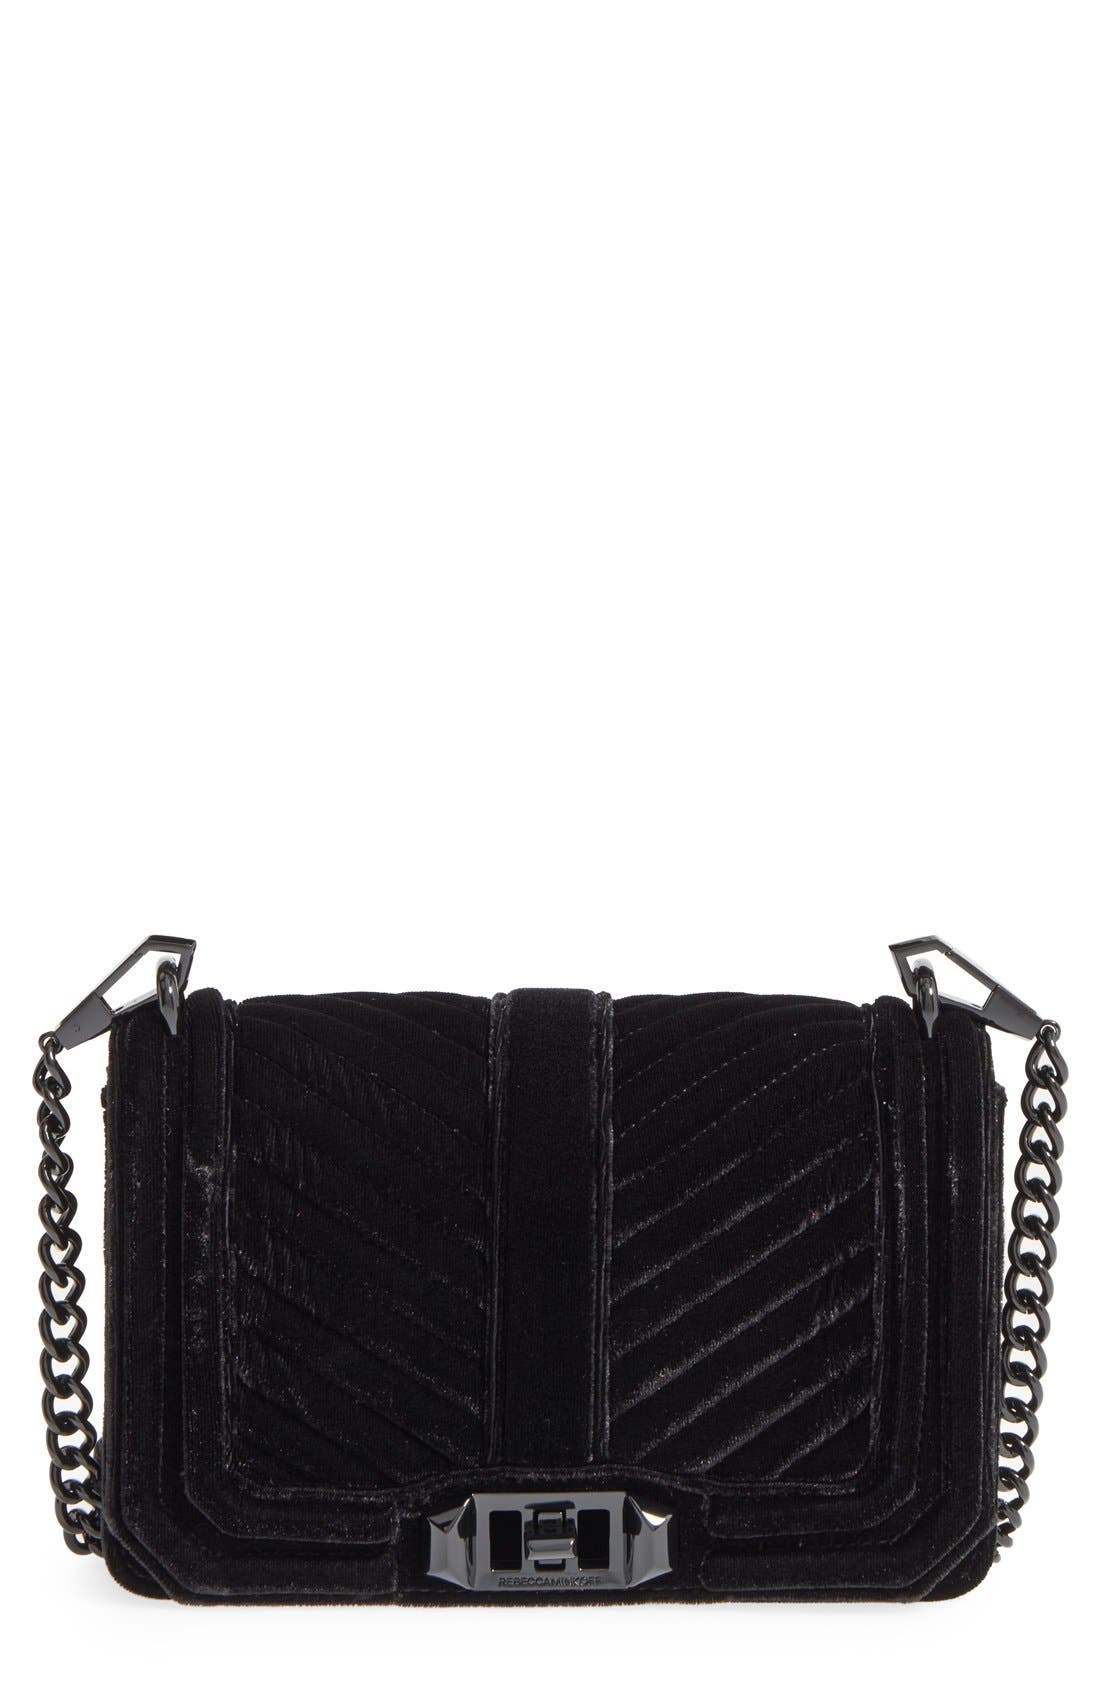 Alternate Image 1 Selected - Rebecca Minkoff Small Love Quilted Velvet Crossbody Bag